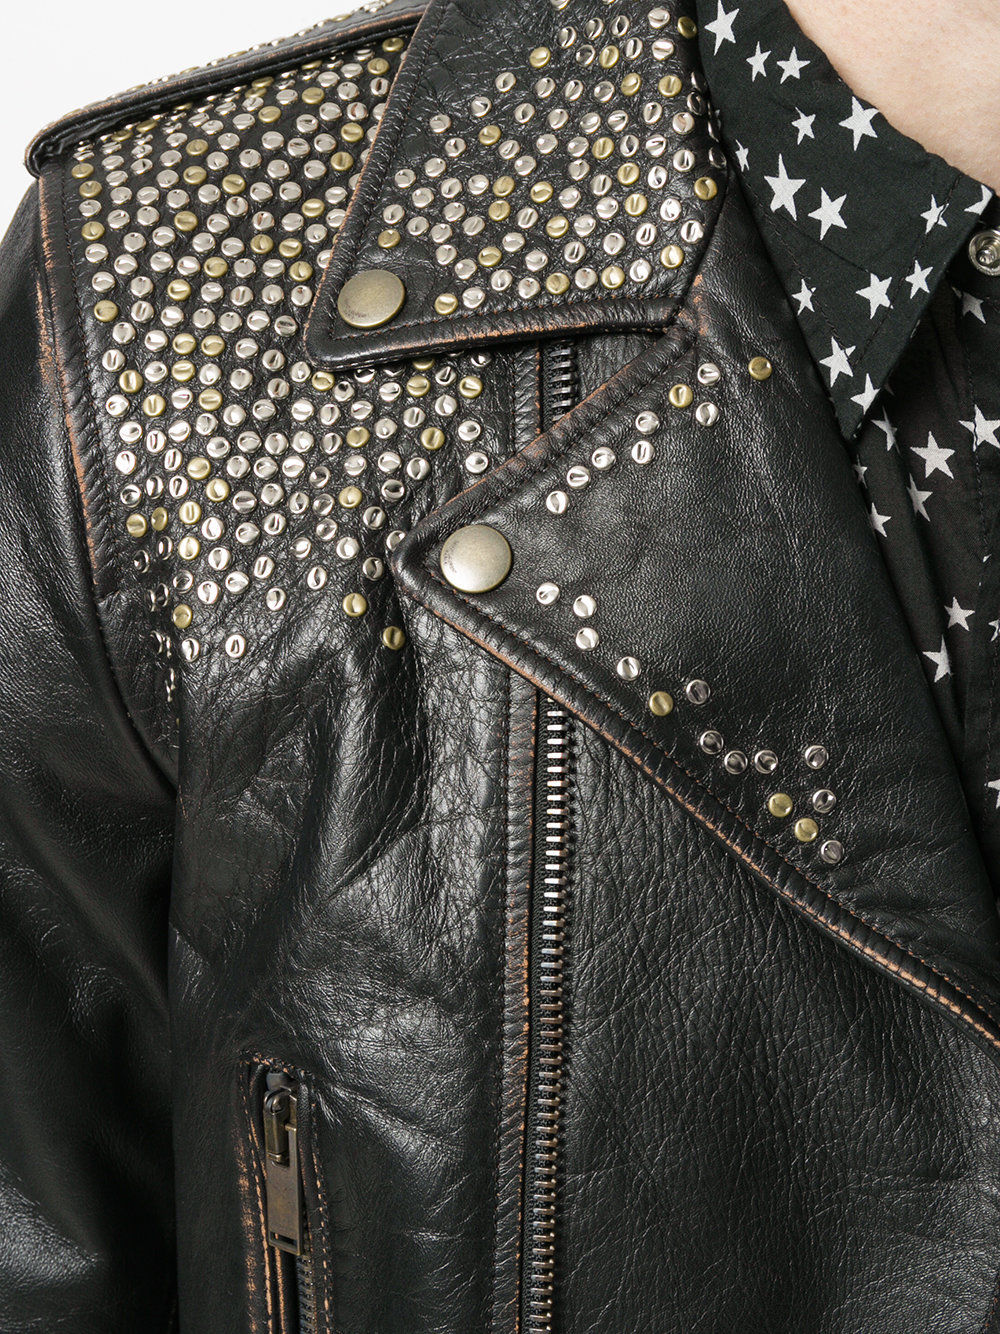 Multi Stud Biker Distressed Vintage Leather Jackets 03.jpg